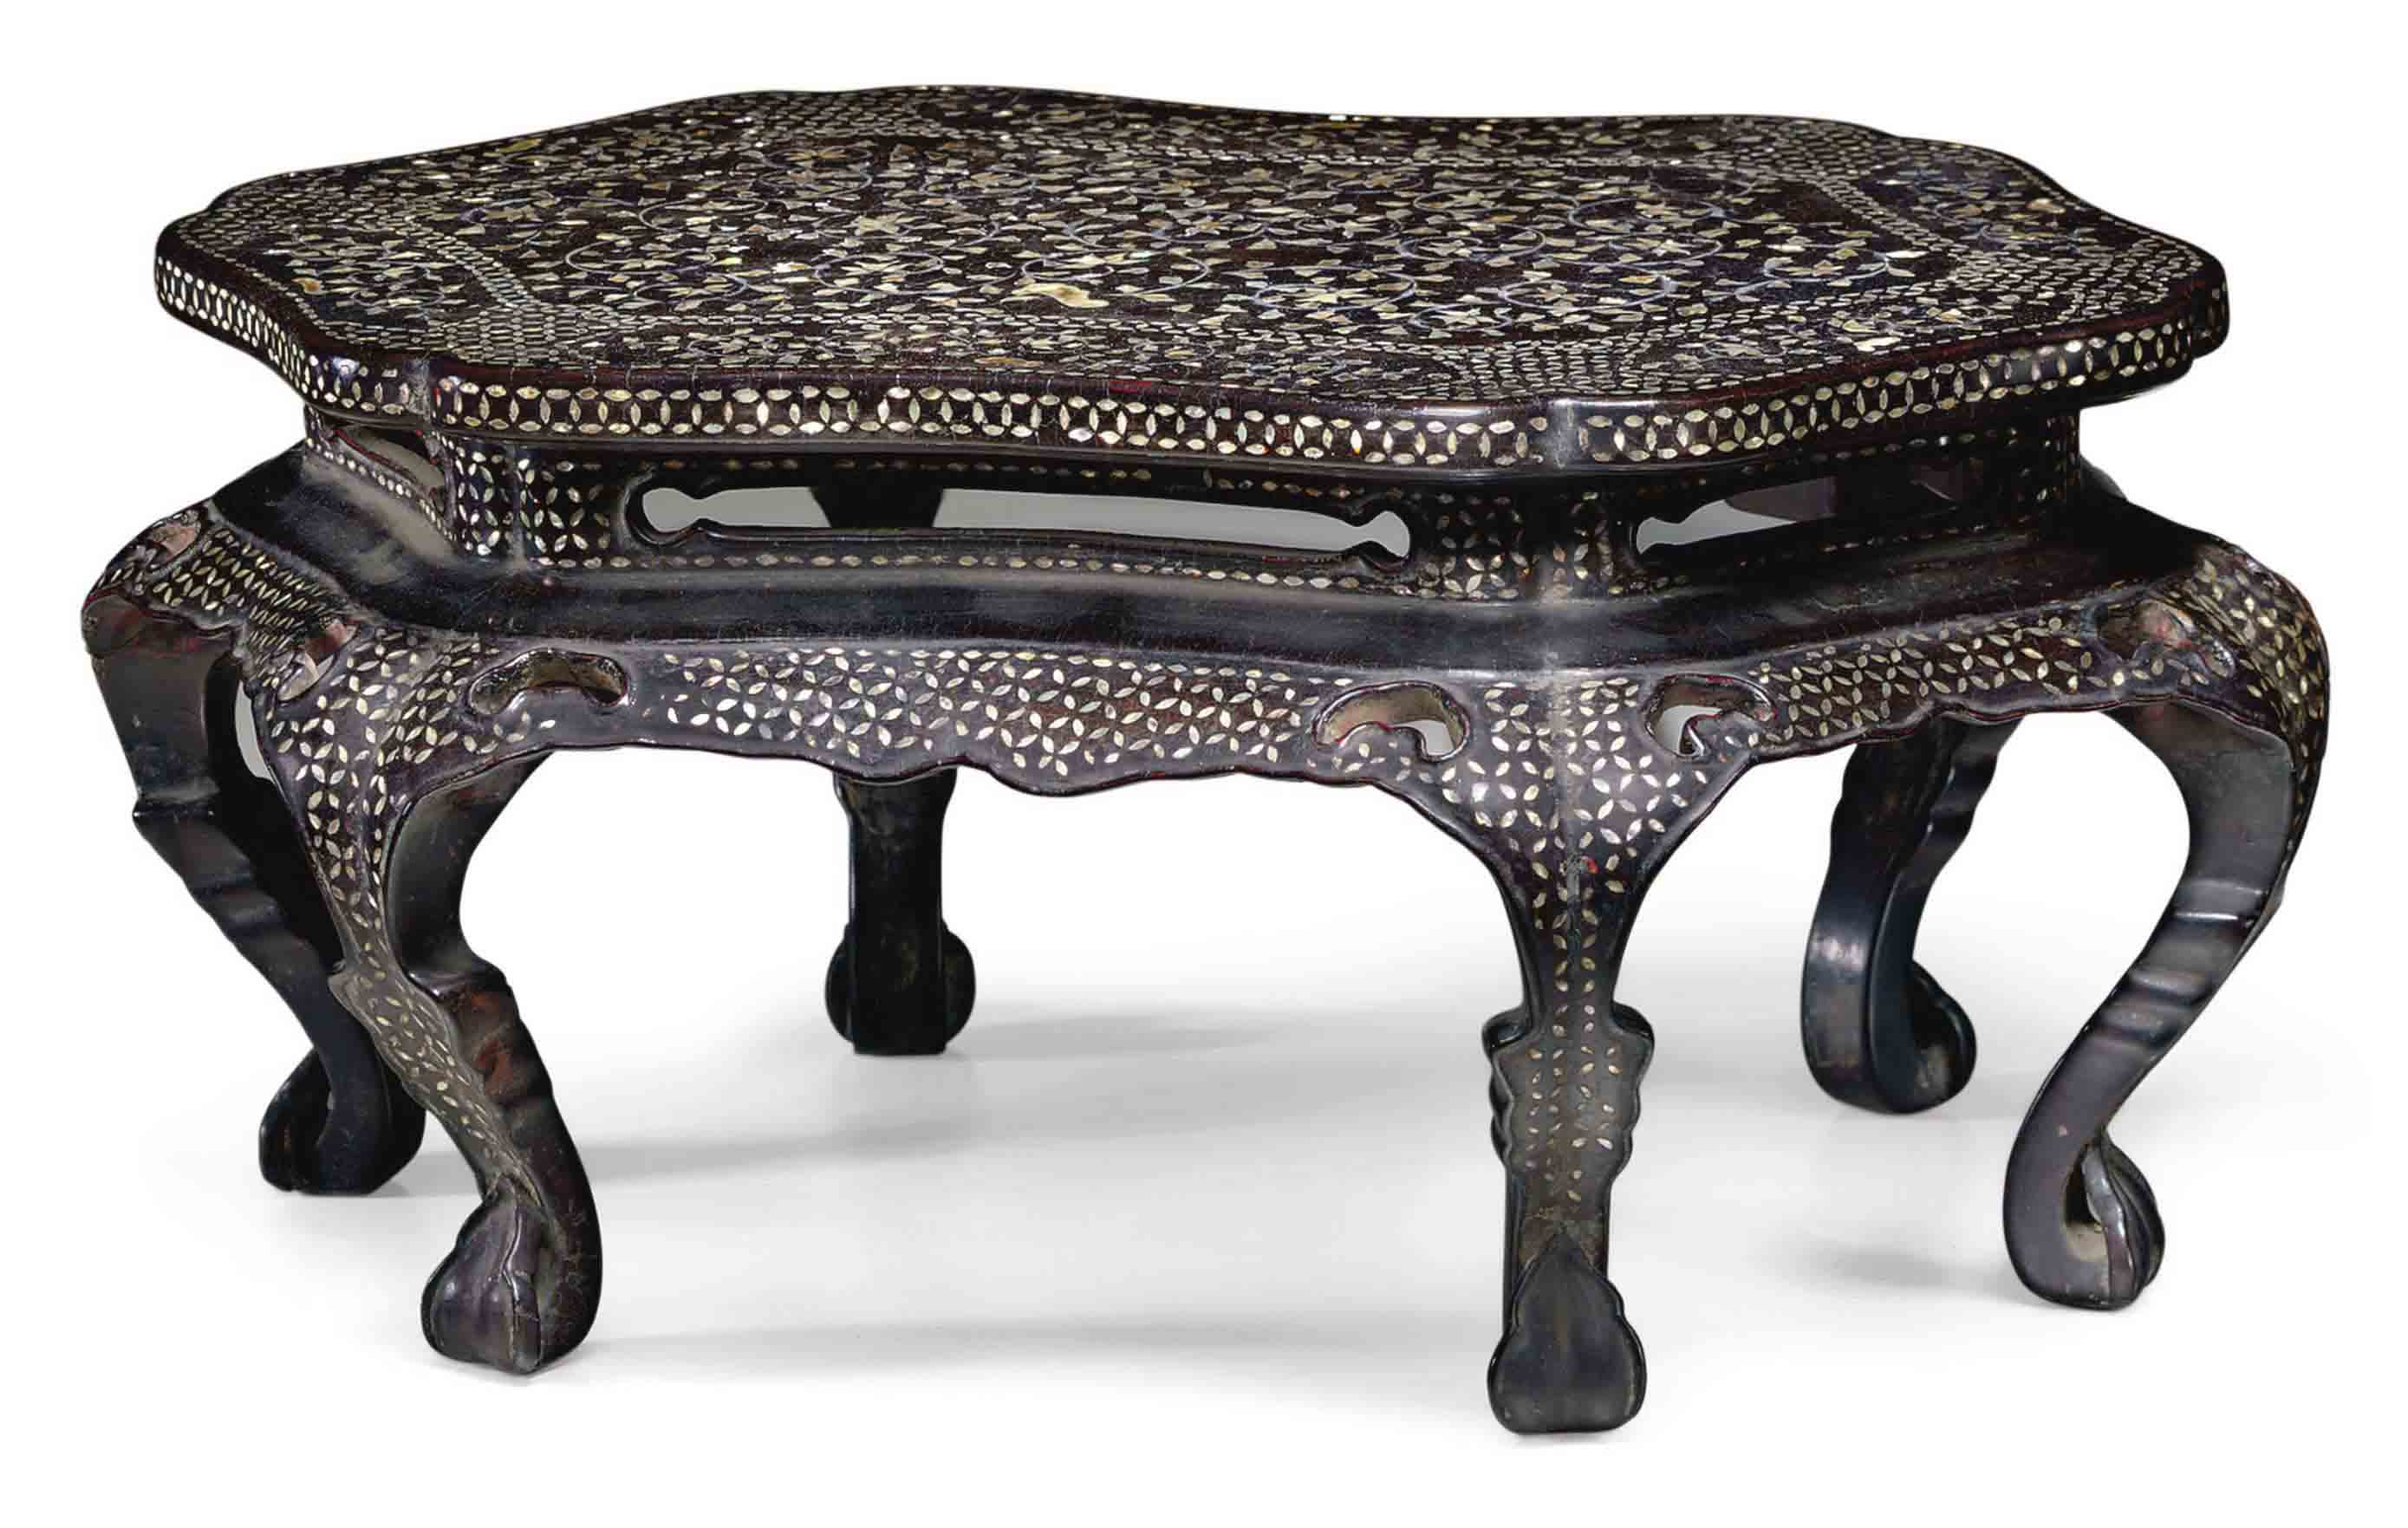 A SMALL KOREAN MOTHER-OF-PEARL AND WIRE-INLAID BLACK LACQUER TABLE